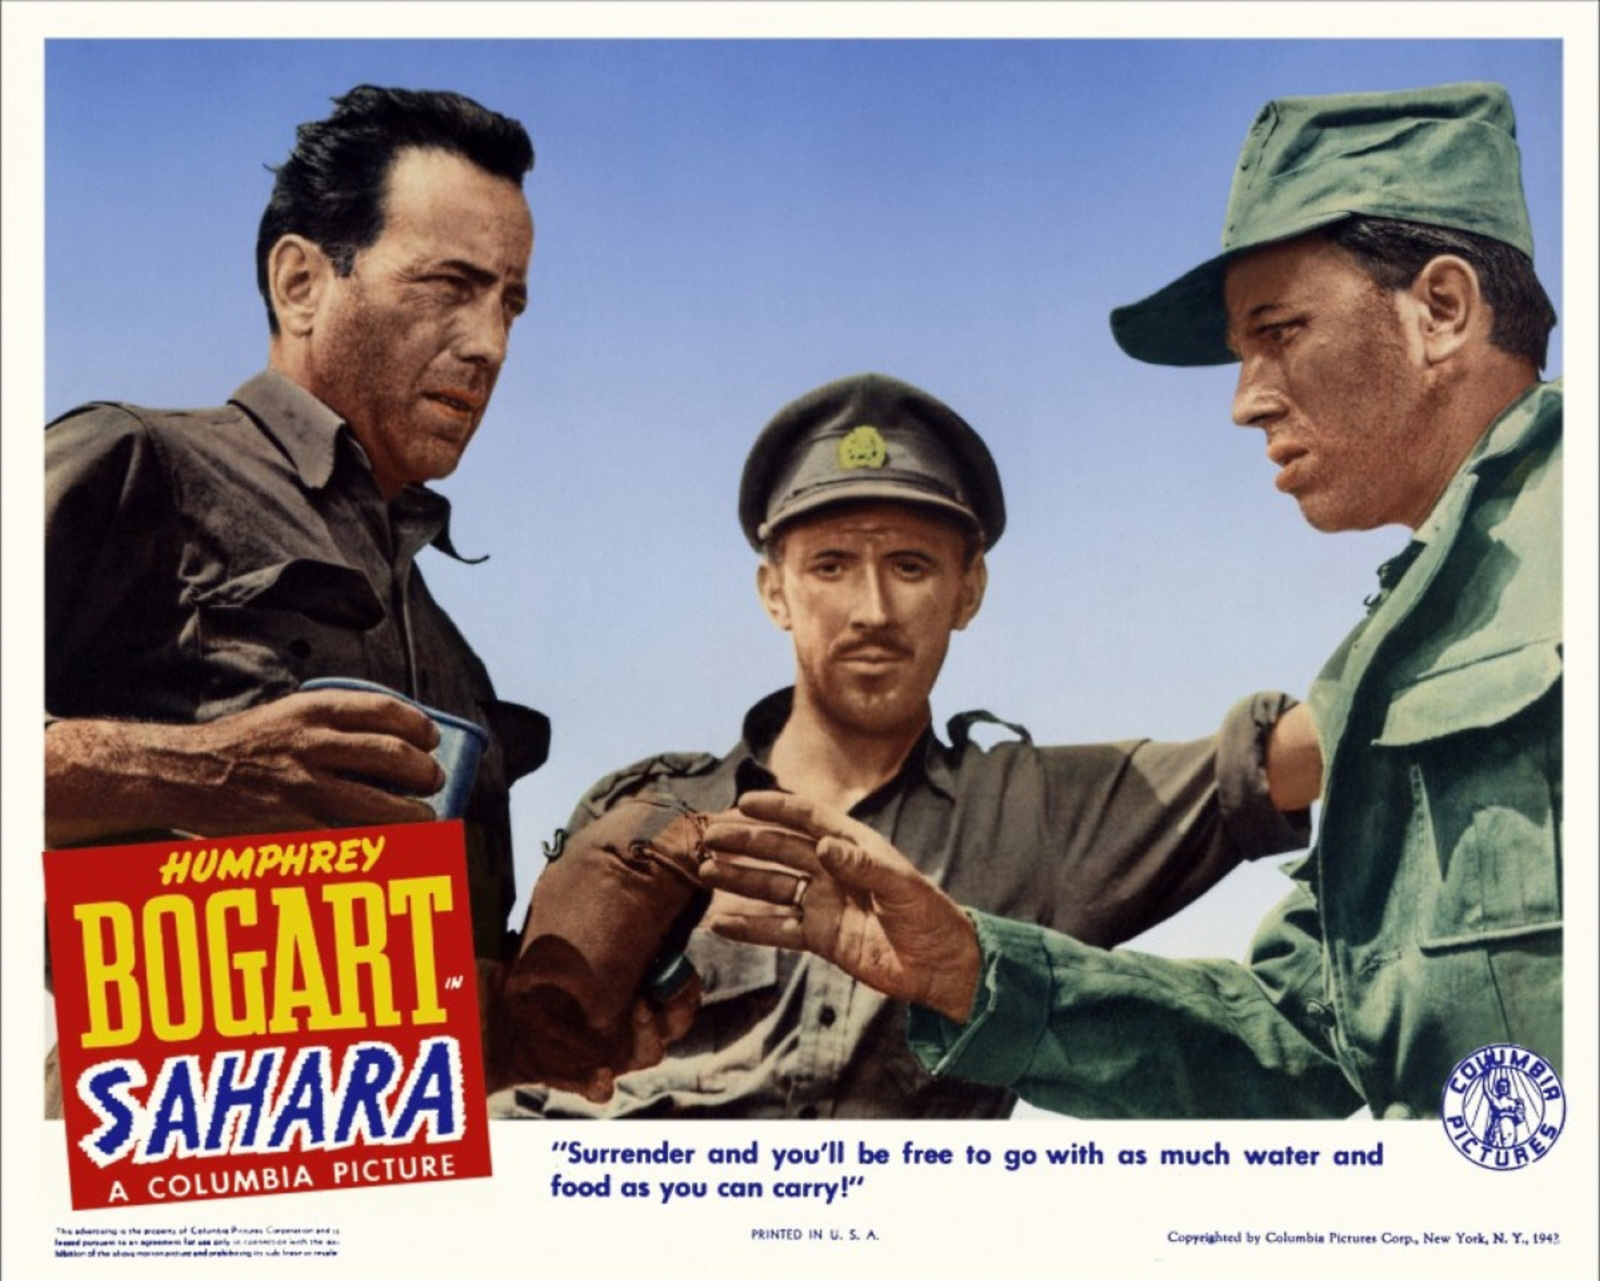 HR news items yield the following information about this film's production: In November 1942, it was announced that the film was to star Glenn Ford and ...